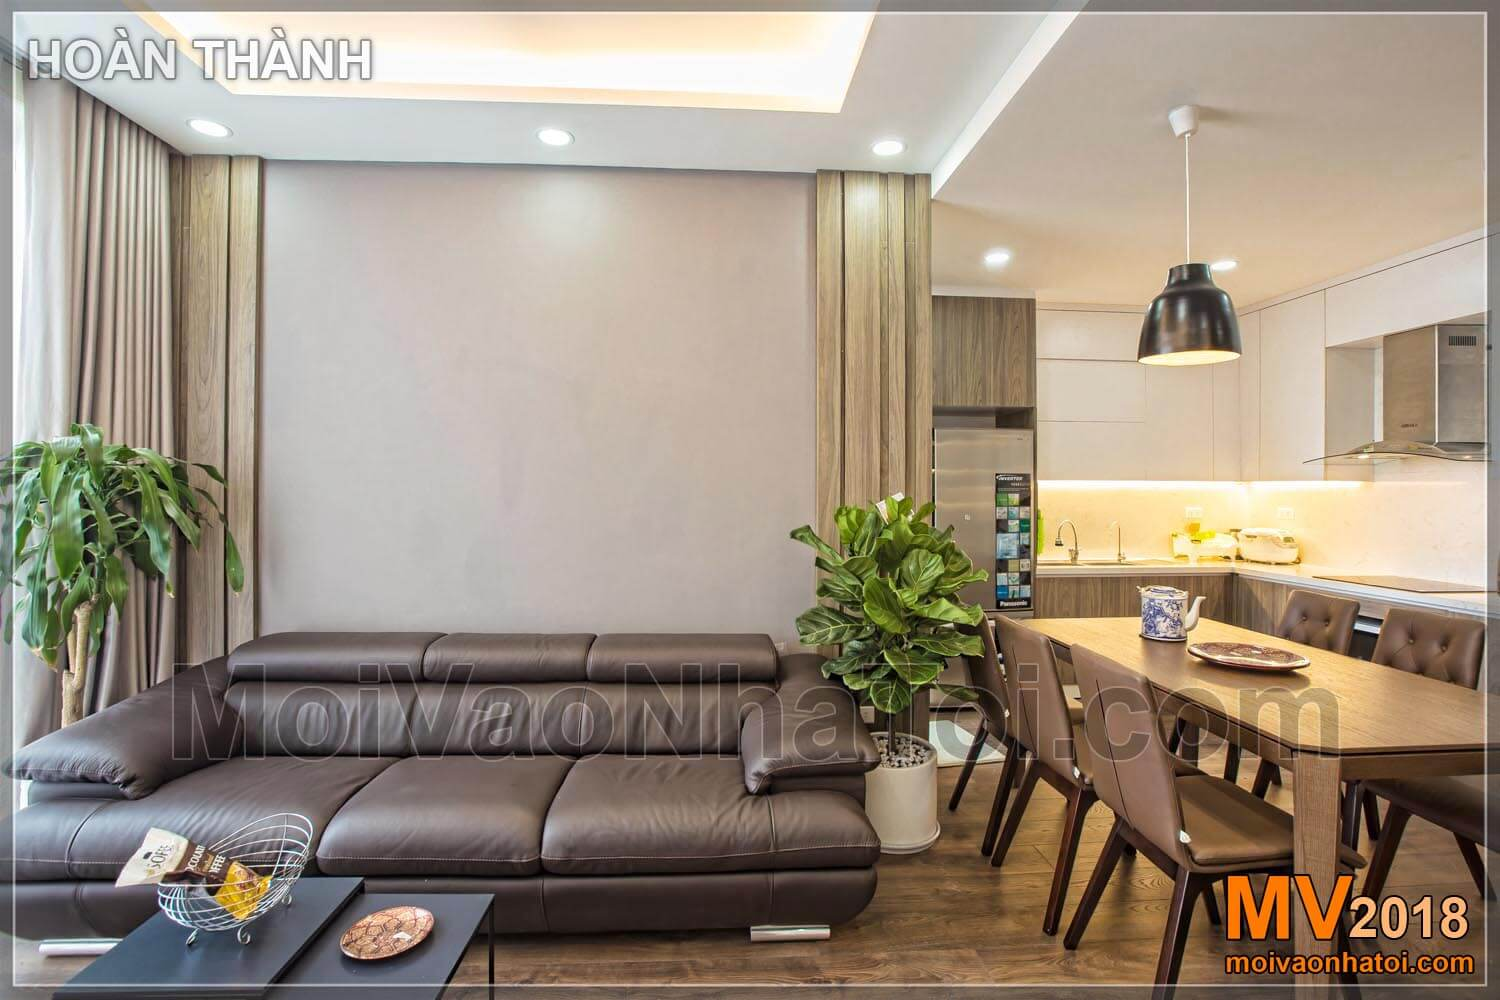 living room and dining table in combination with Vinhomes Gardenia apartment